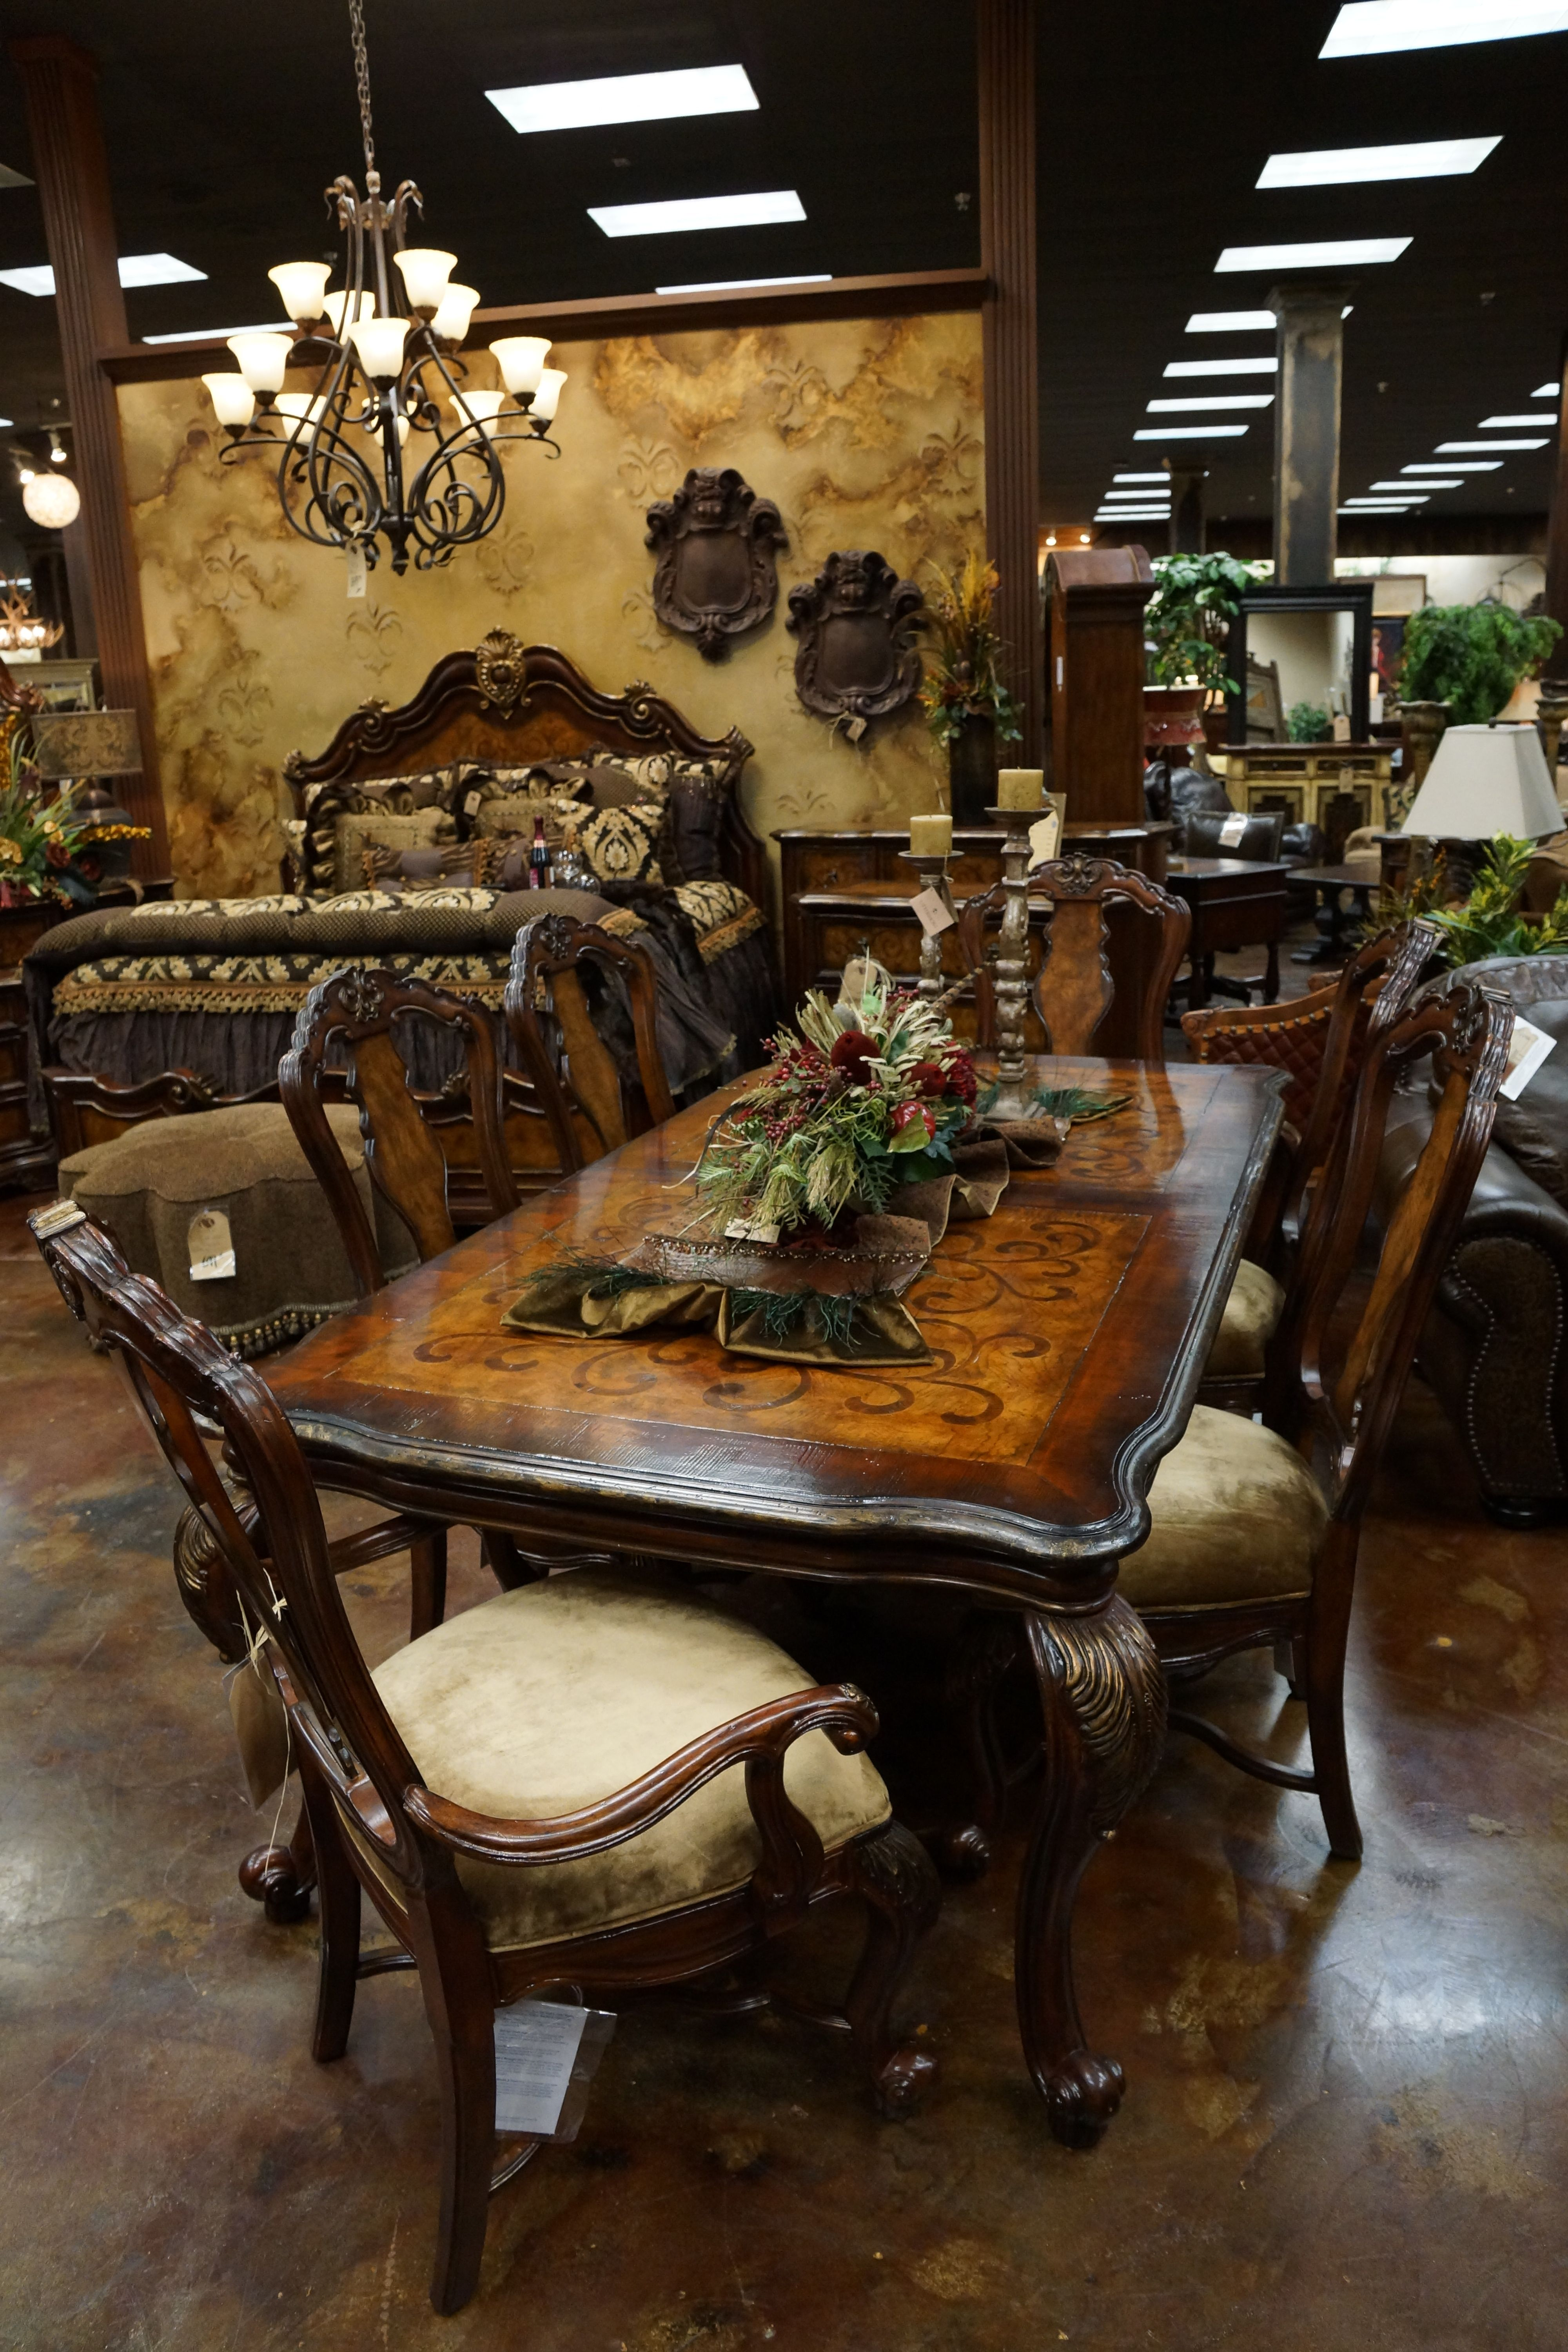 Marvelous Available At Carteru0027s Furniture Midland, Texas 432 682 2843 Http://